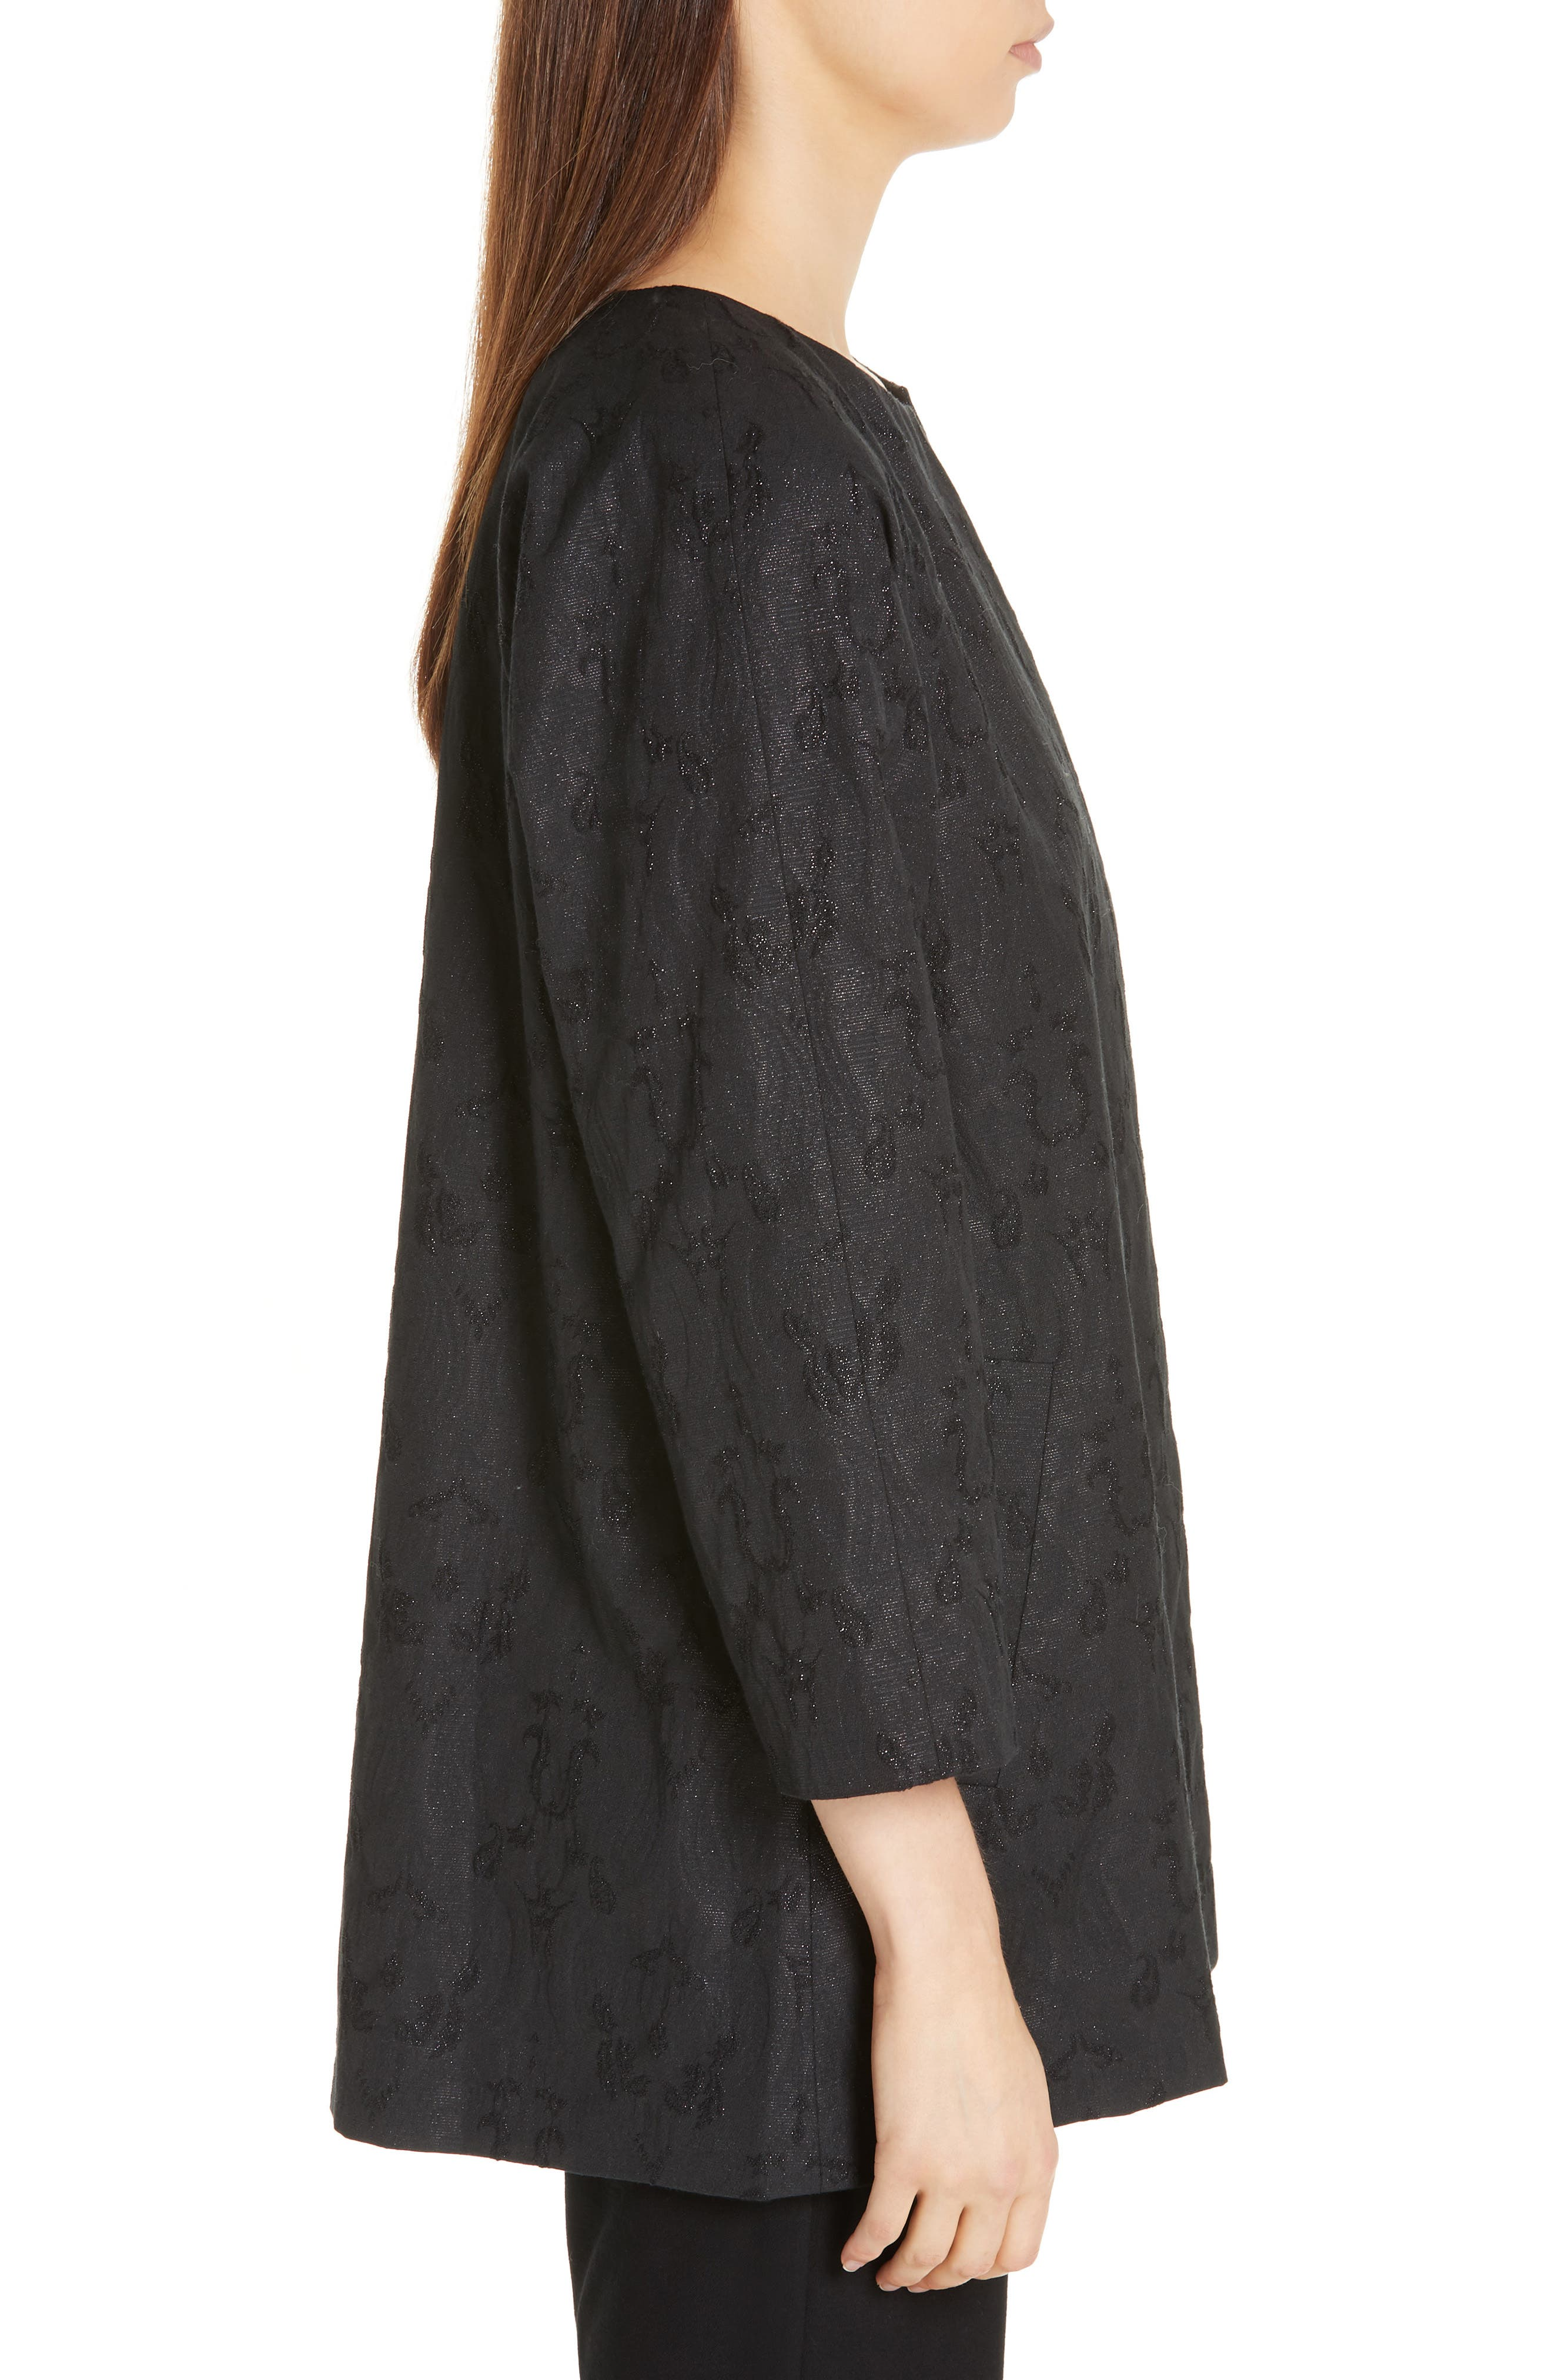 EILEEN FISHER, Metallic Jacquard Collarless Jacket, Alternate thumbnail 4, color, BLACK